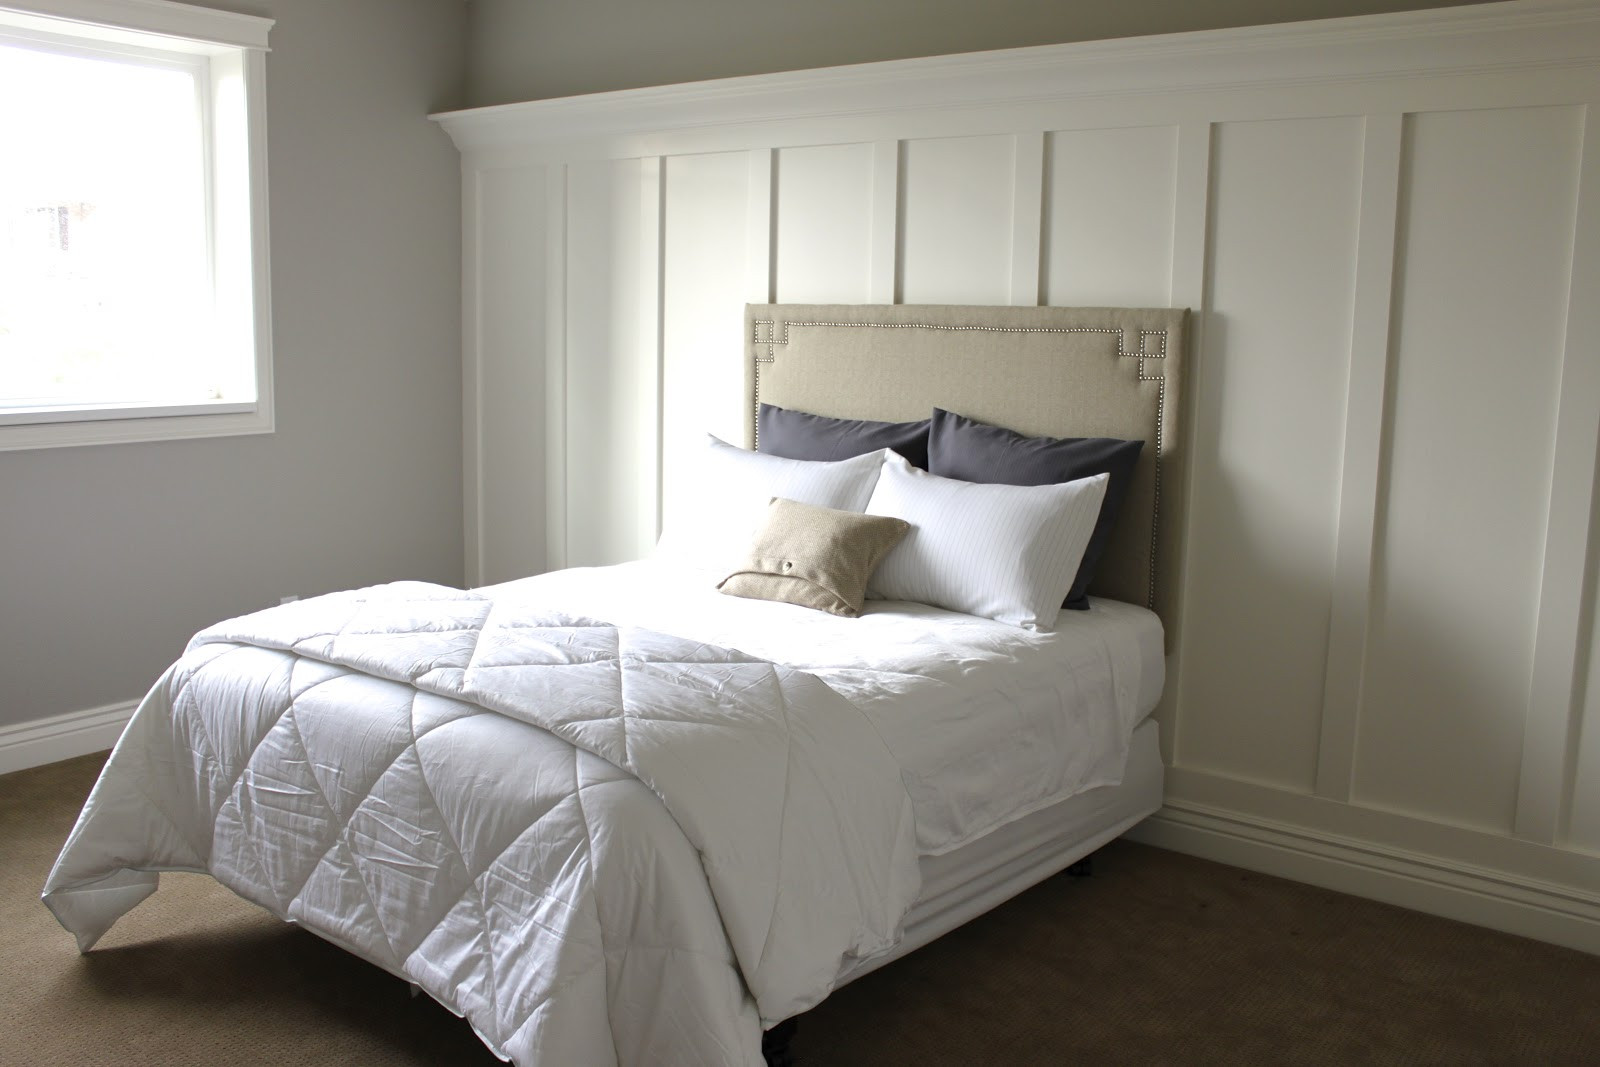 Best ideas about DIY Bed Headboards . Save or Pin Amy s Casablanca DIY headboard Now.